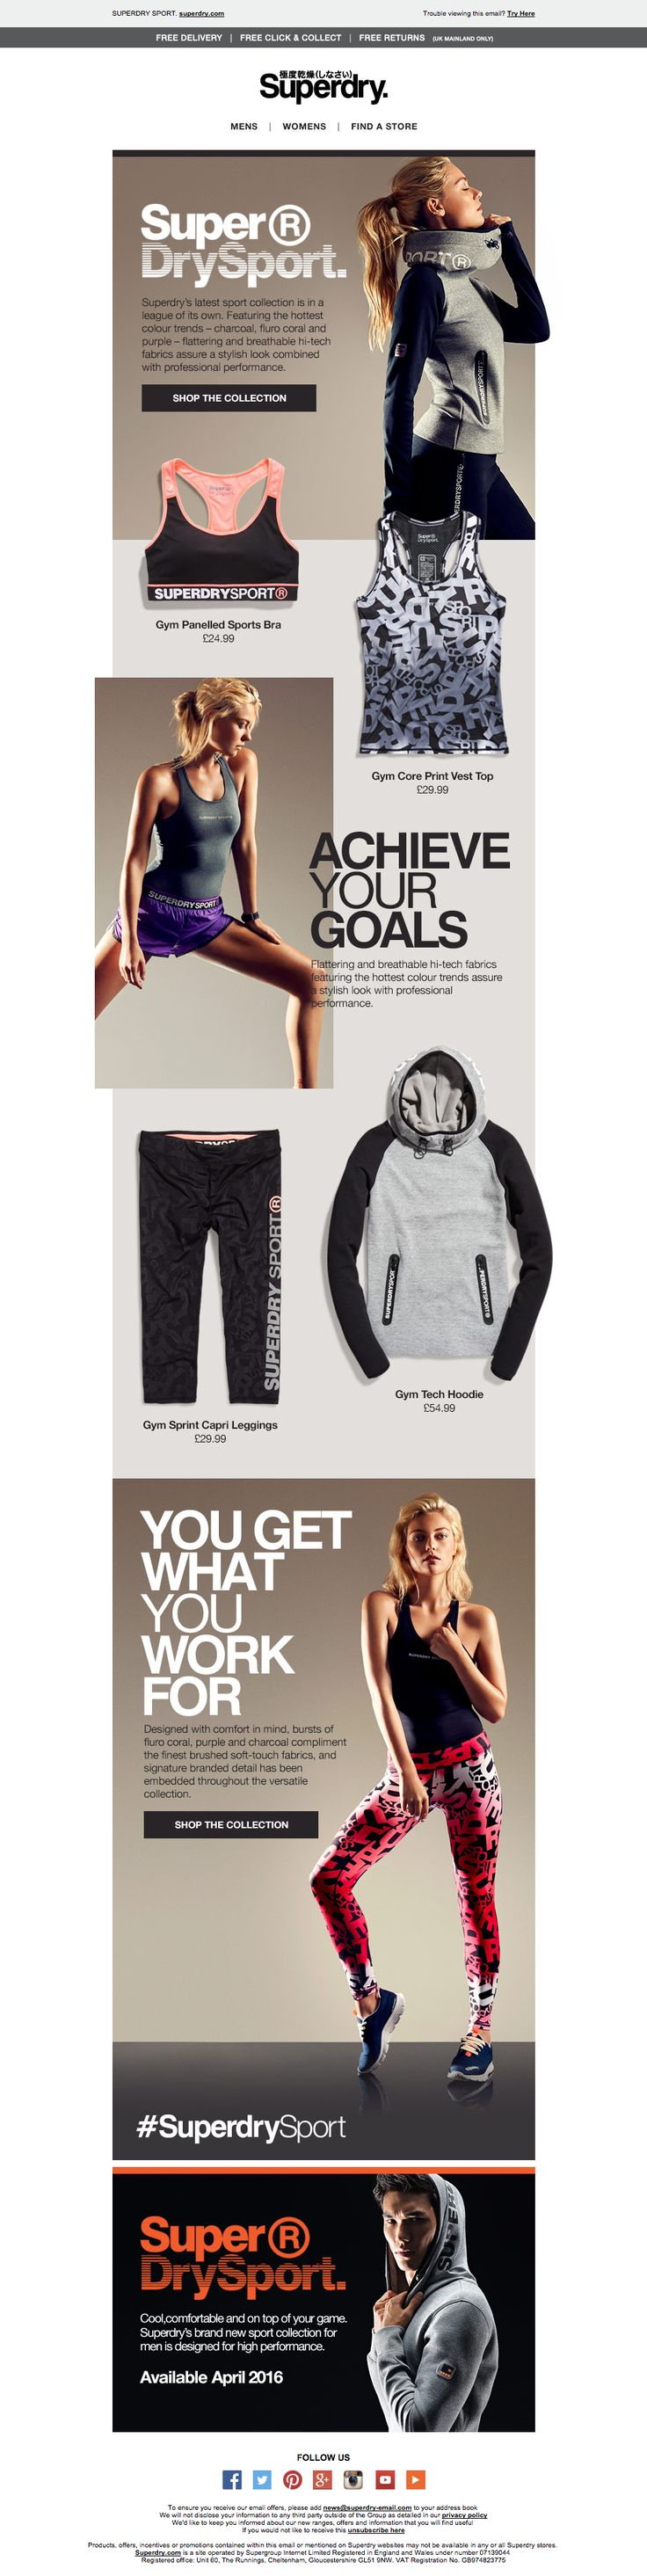 Superdry Sport Email / Newsletter Design